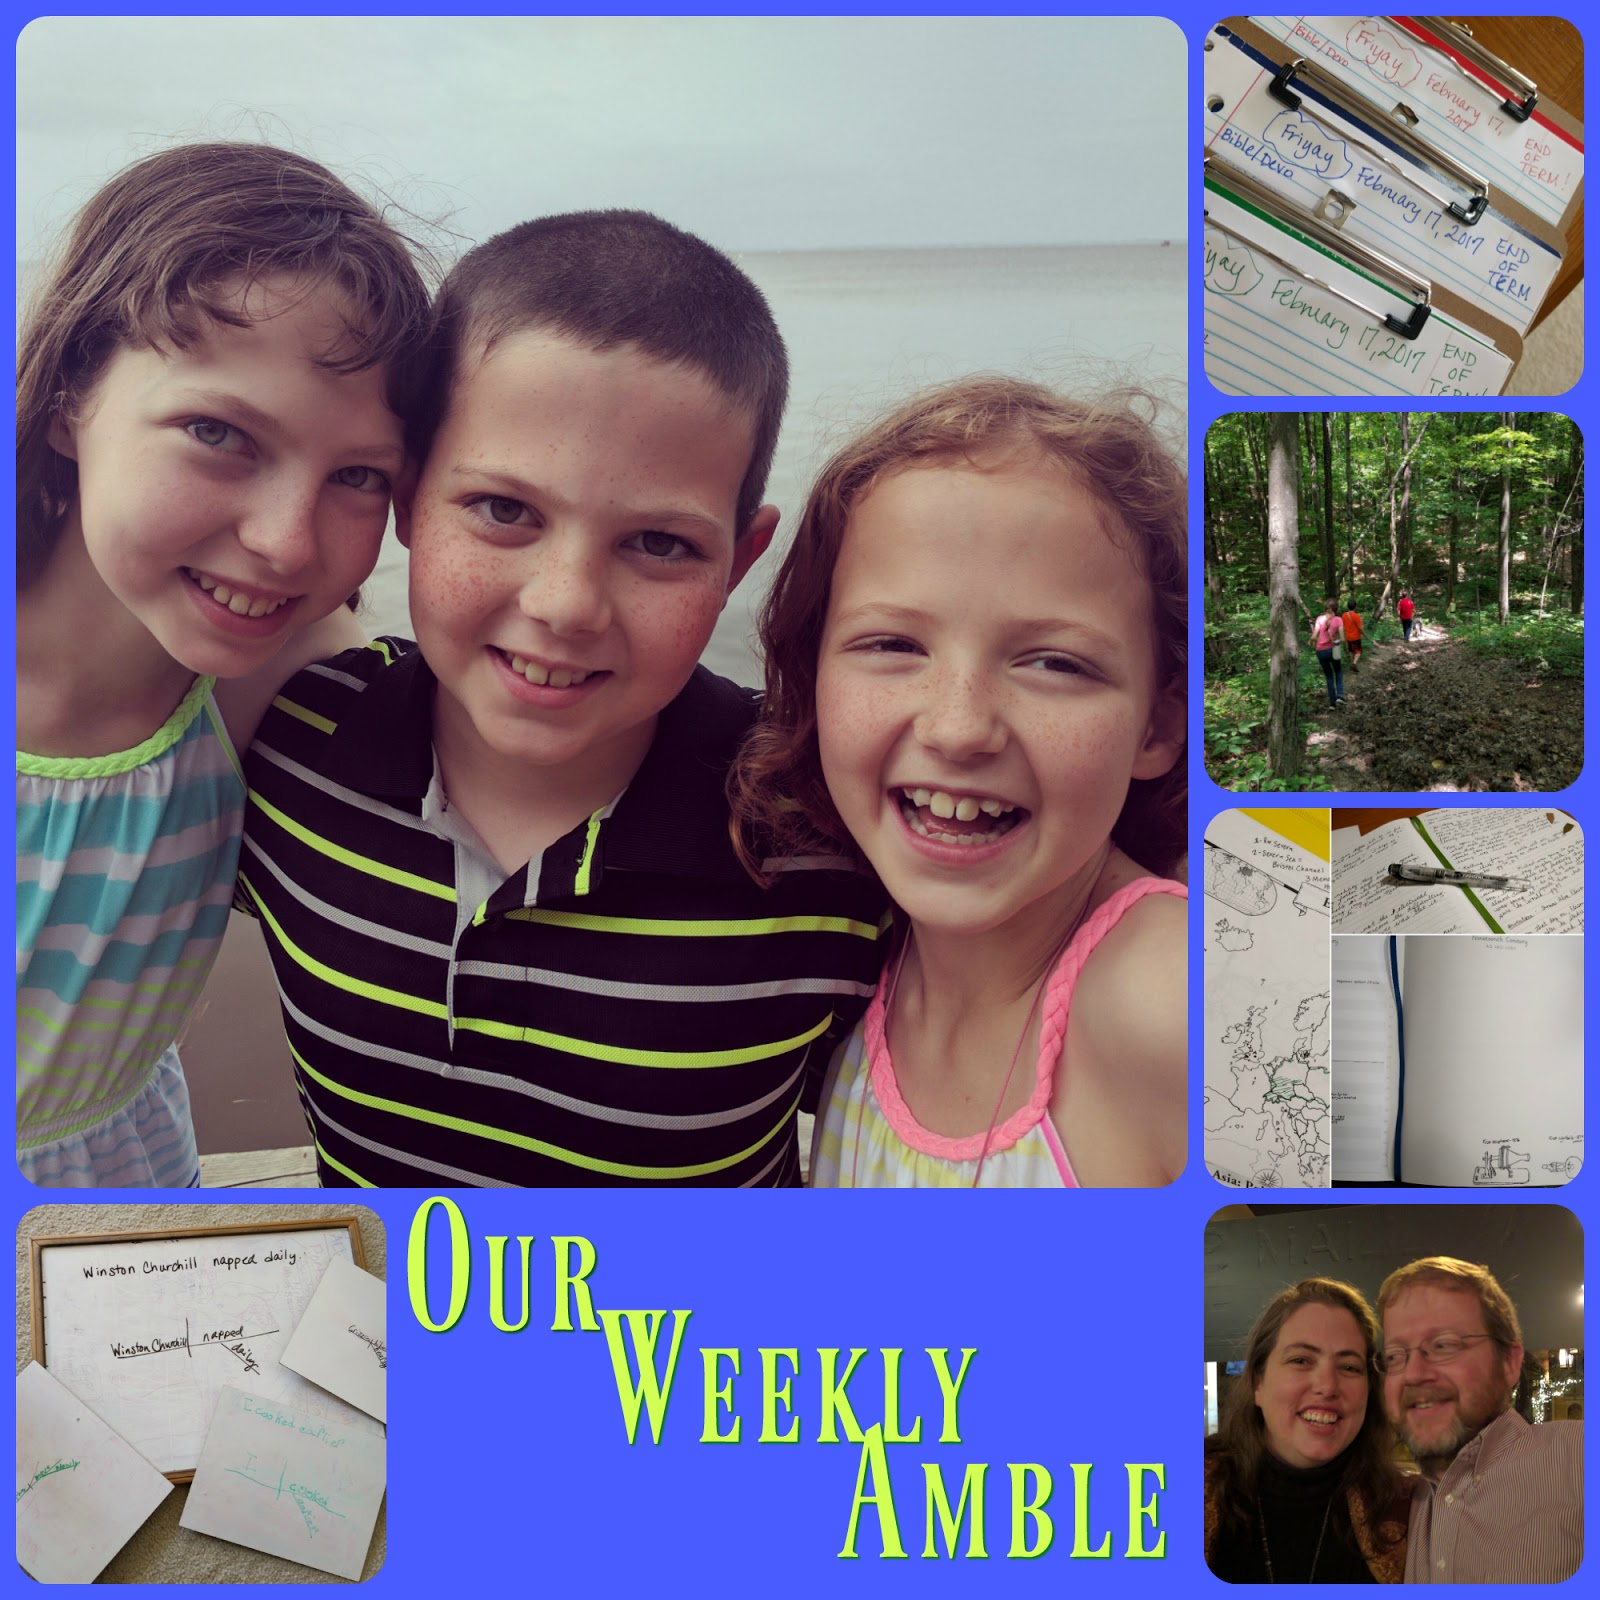 Our Weekly Amble for March 13-17, 2017